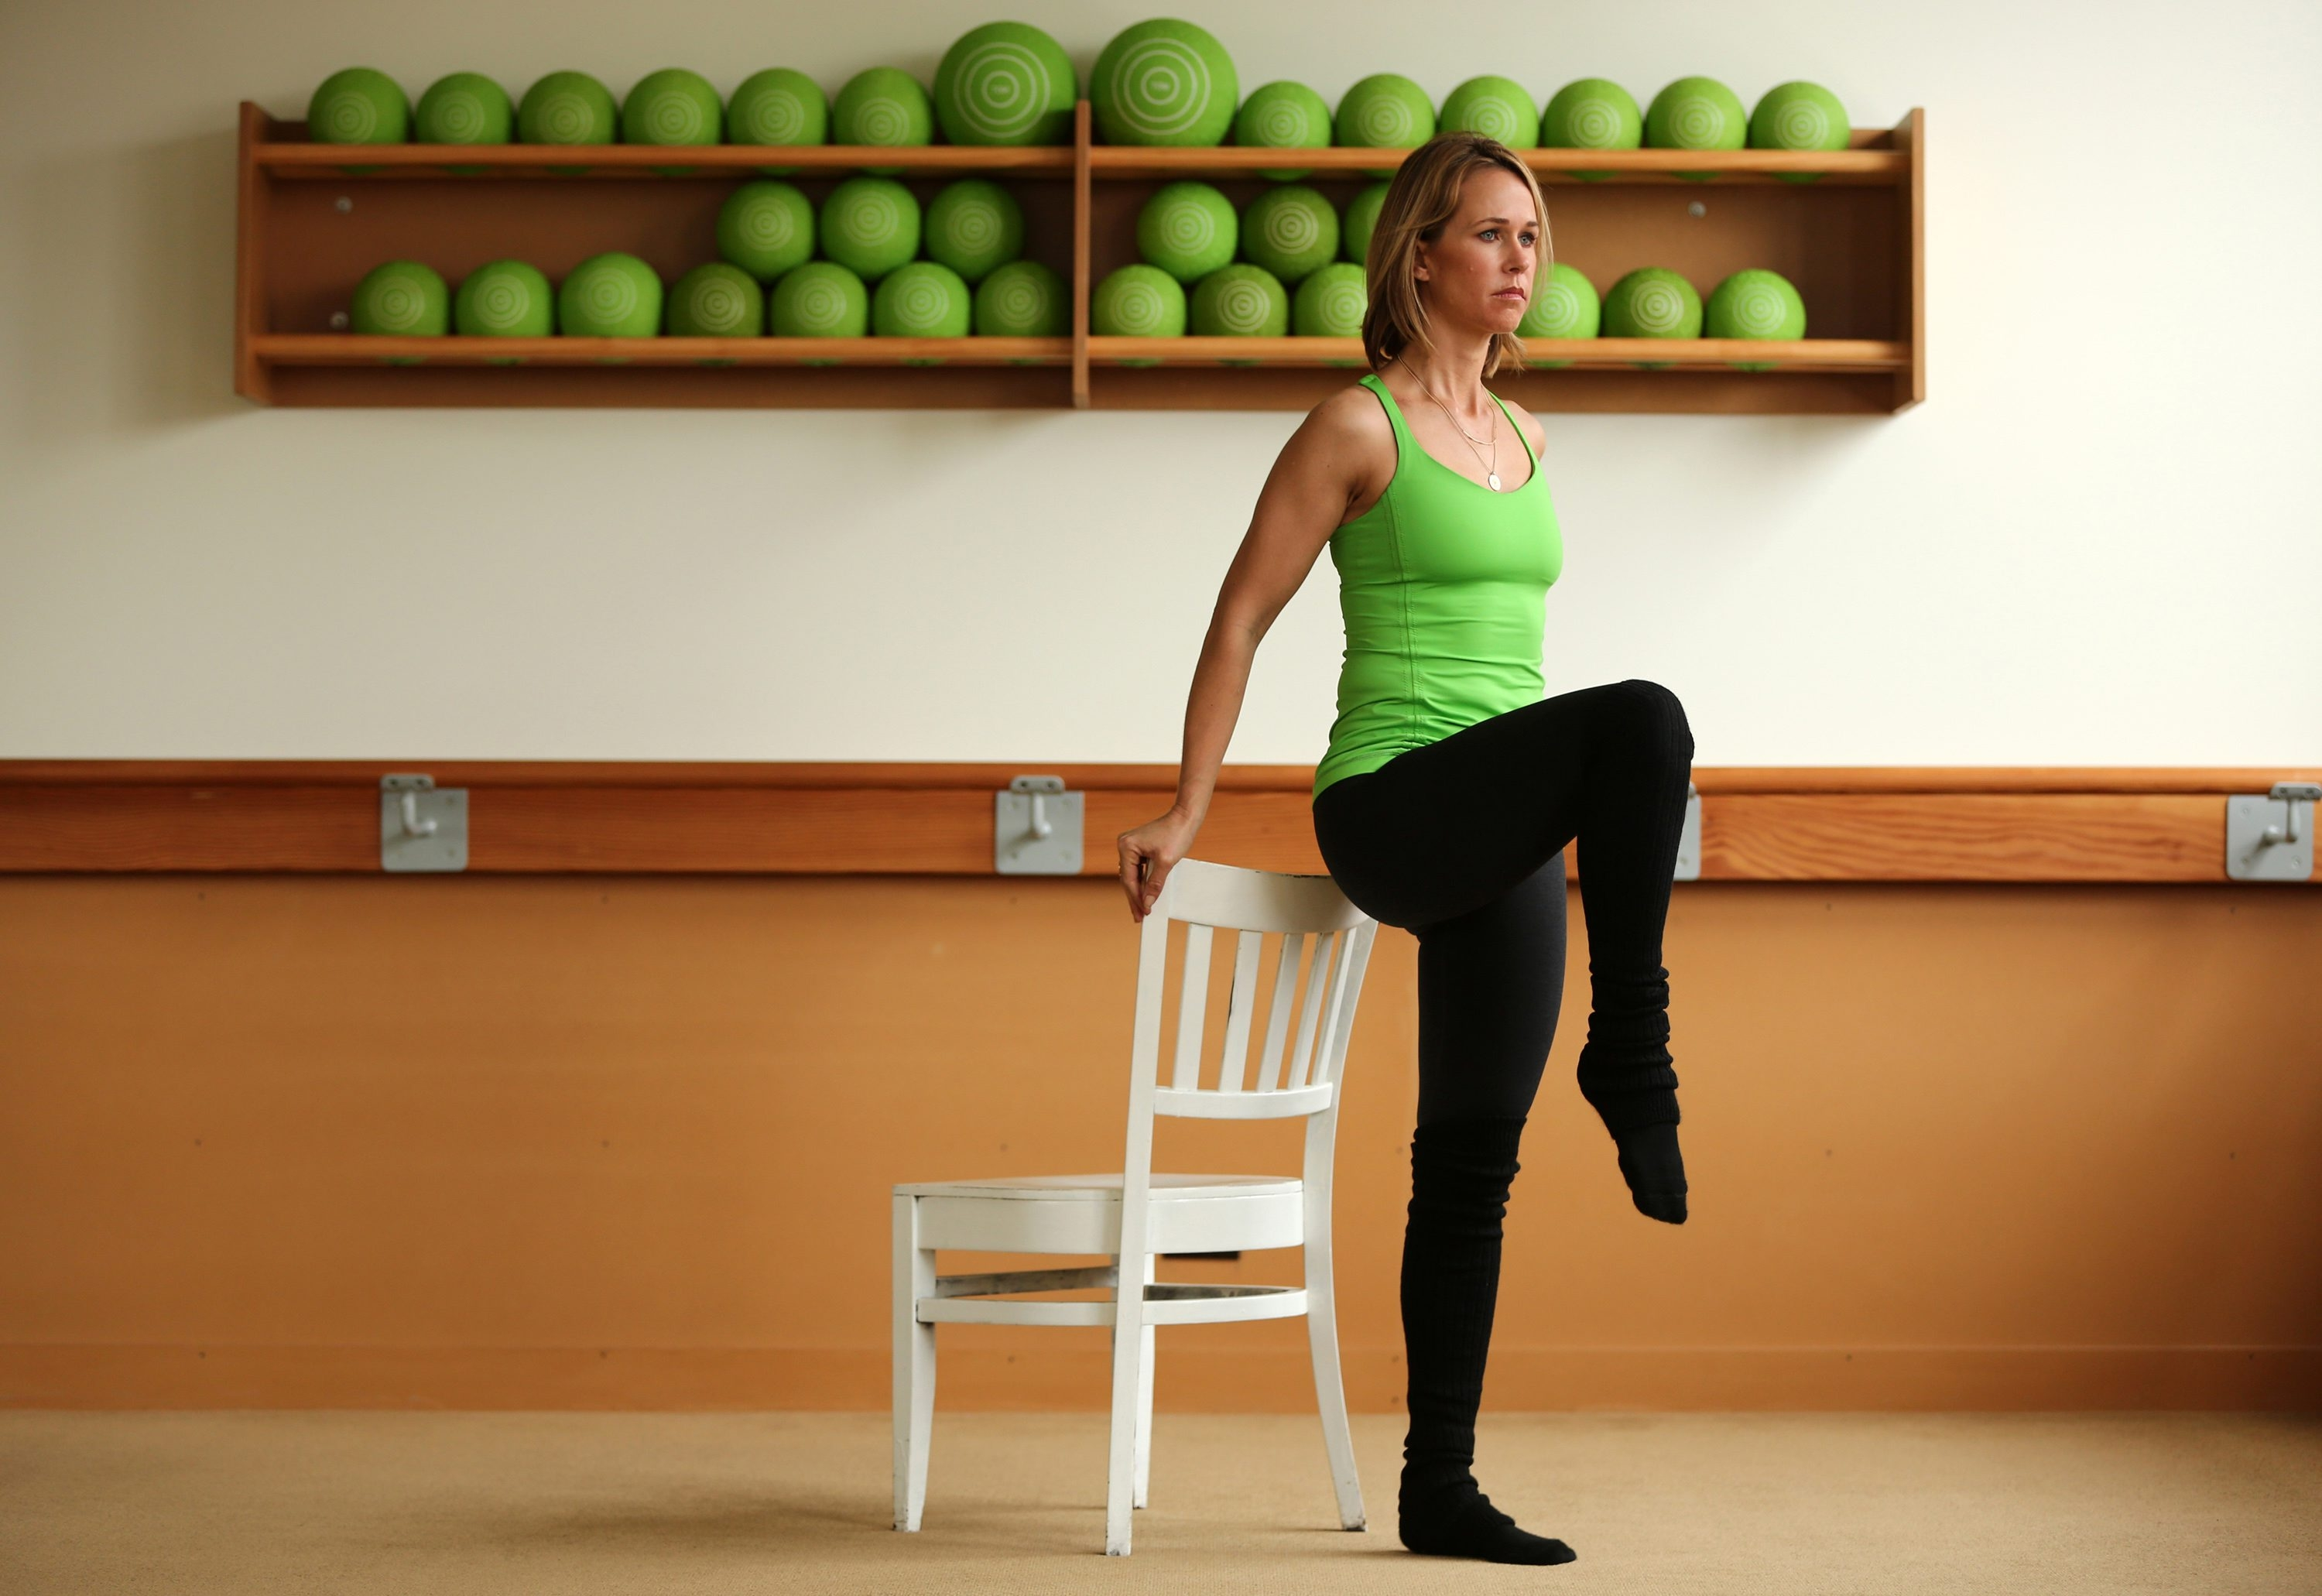 Jill Dailey McIntosh, founder of the Dailey Method barre workouts, demonstrates leg lifts.